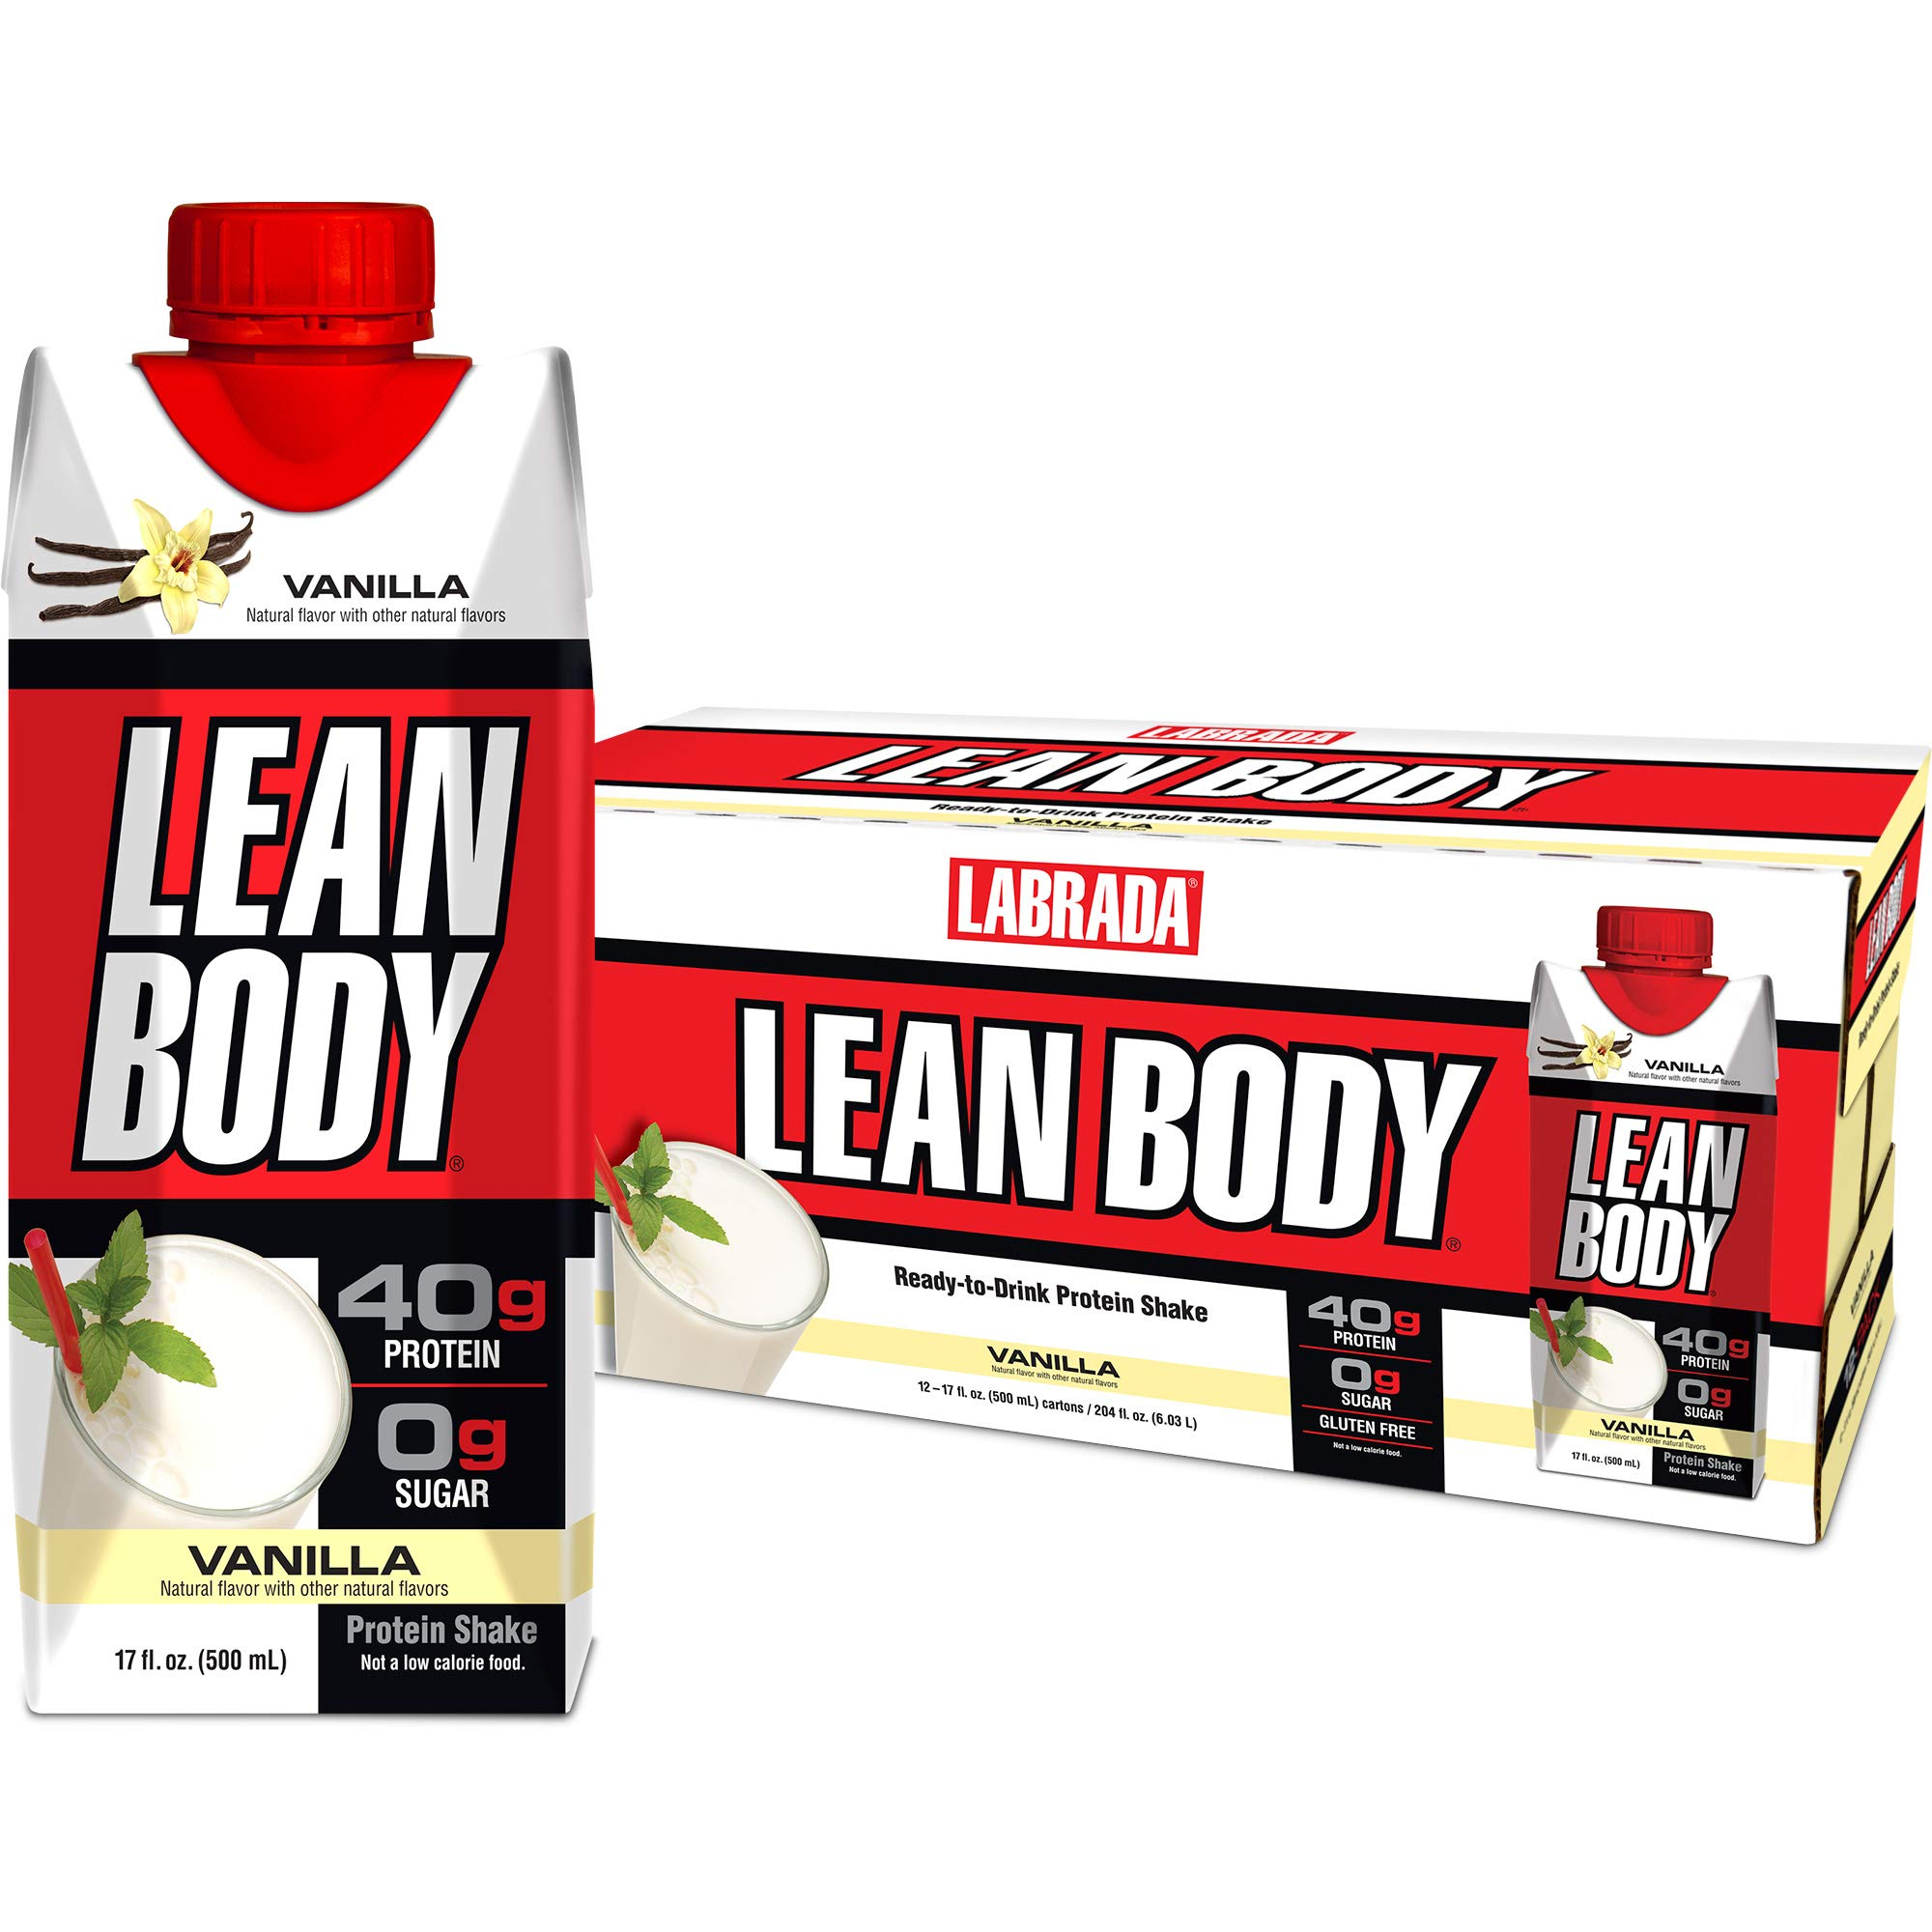 LABRADA - Lean Body Ready To Drink Whey Protein Shake, Convenient On-The-Go Meal Replacement Shake for Men & Women, 40 grams of Protein - Zero Sugar, Lactose & Gluten Free, Vanilla (Pack of 12) by Labrada